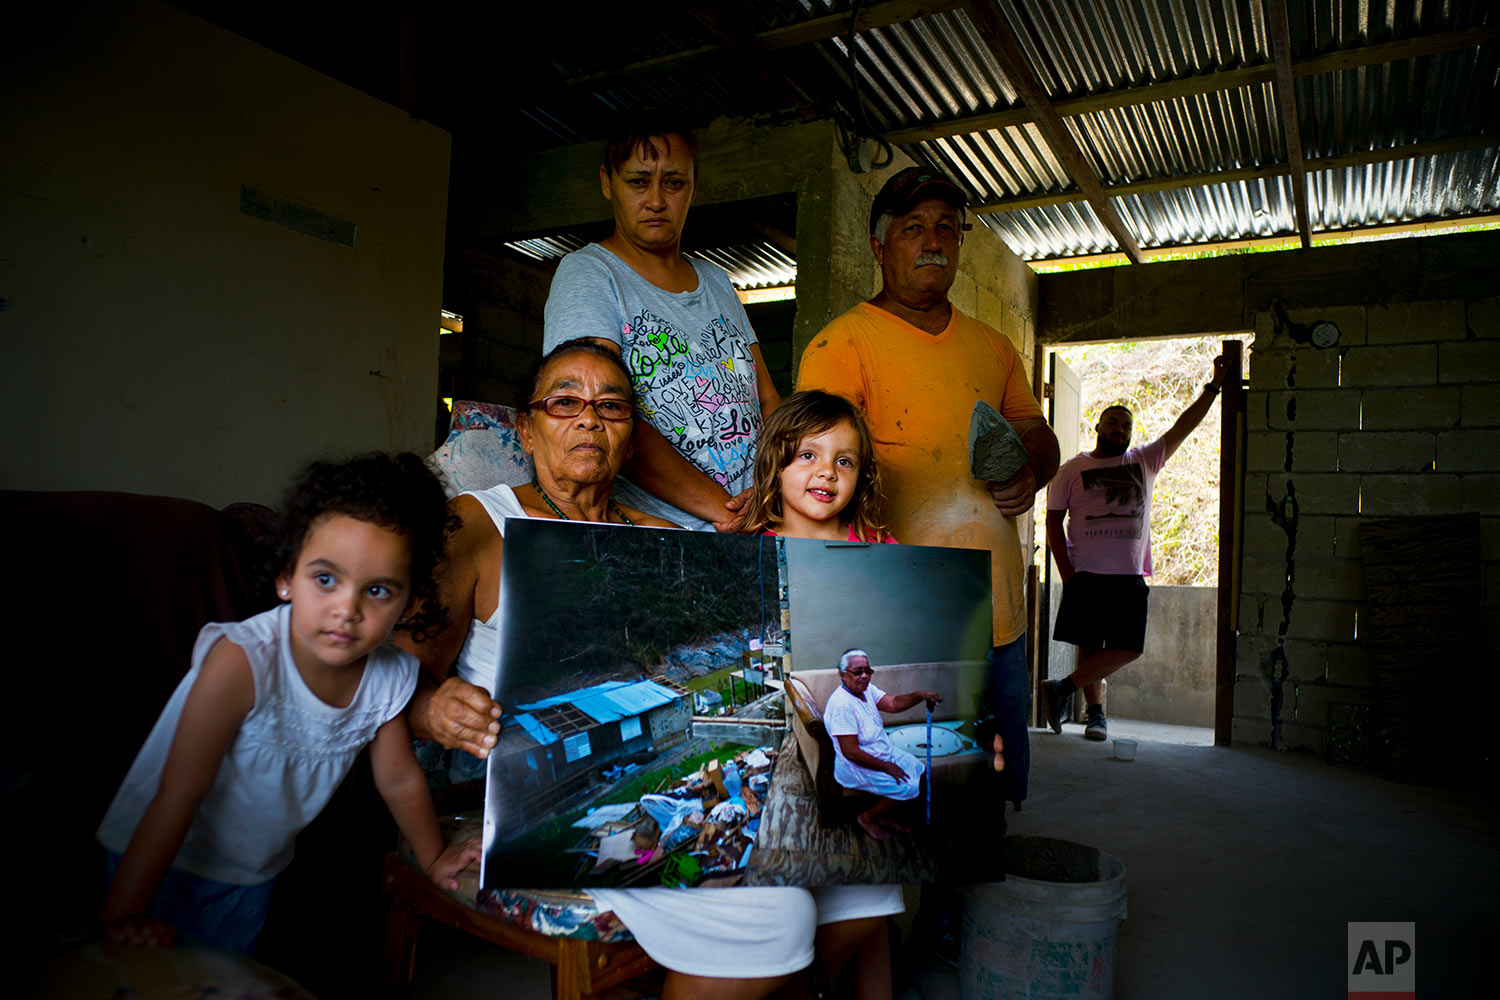 Juana Sostre Vazquez poses with her family and holds a printed photograph of her taken after Hurricane Maria, in the San Lorenzo neighborhood of Morovis, Puerto Rico, May 26, 2018. (AP Photo/Ramon Espinosa)